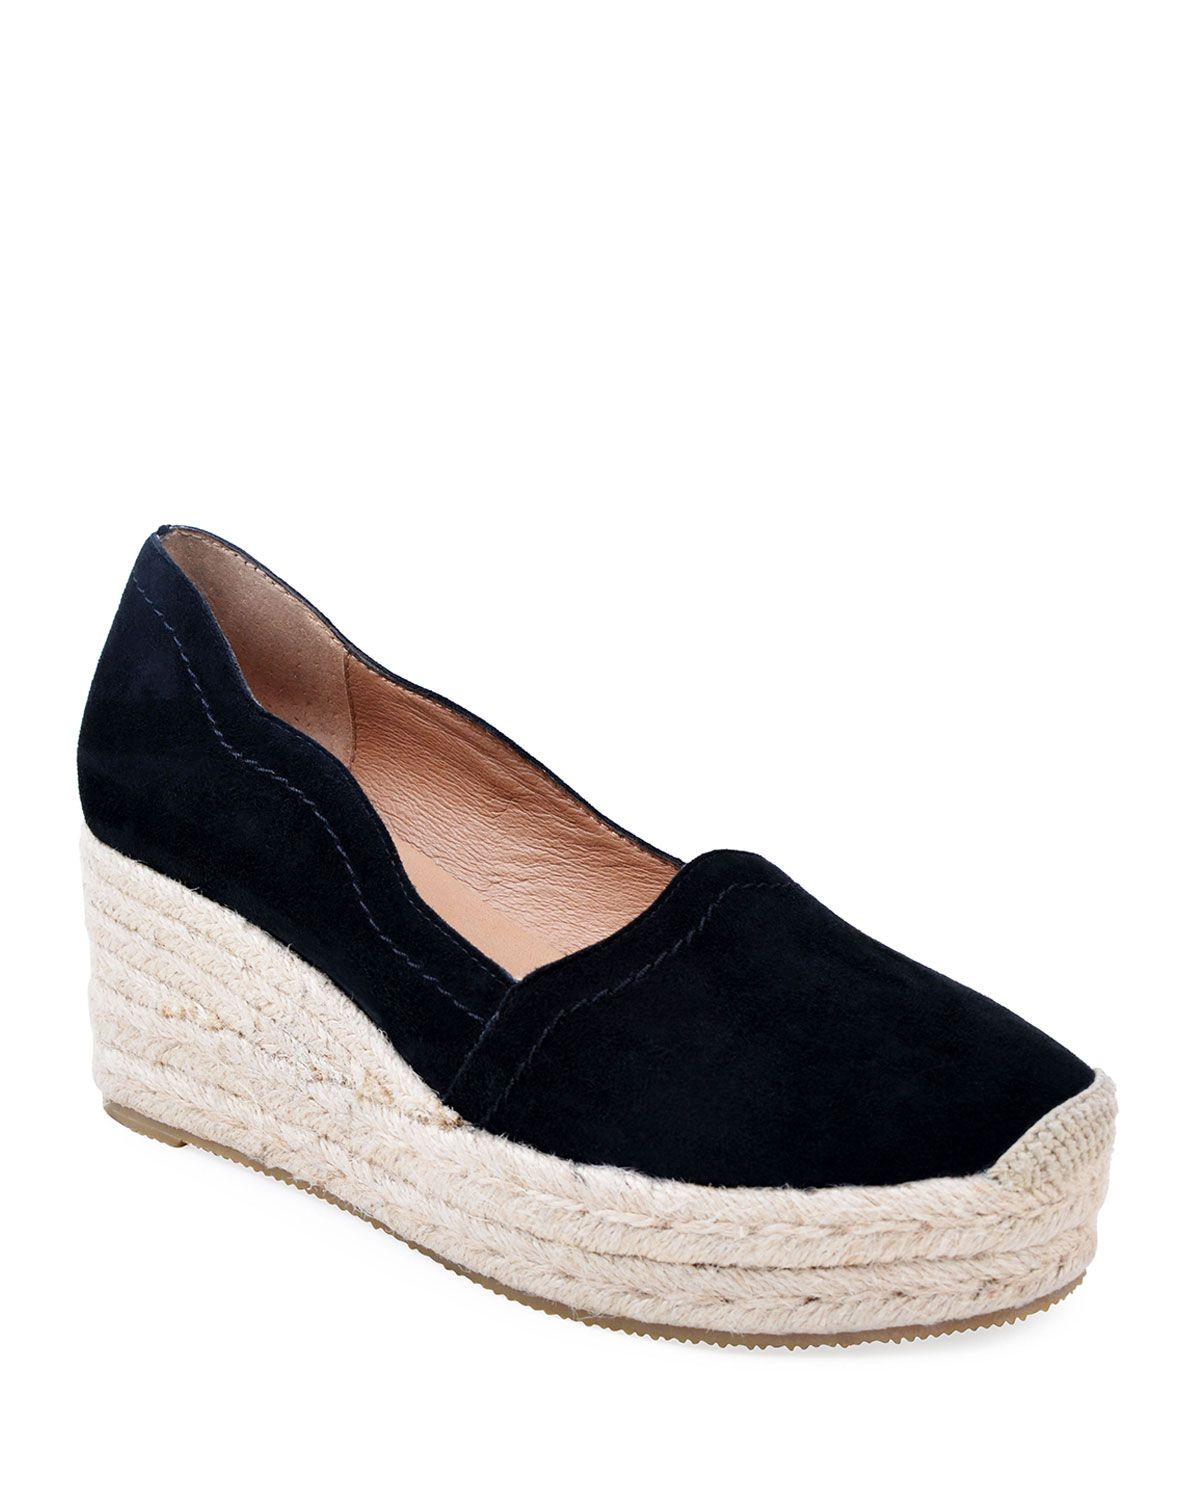 32d003f97d Bettye Muller Concept Reese Scalloped Suede Espadrilles, Black in ...